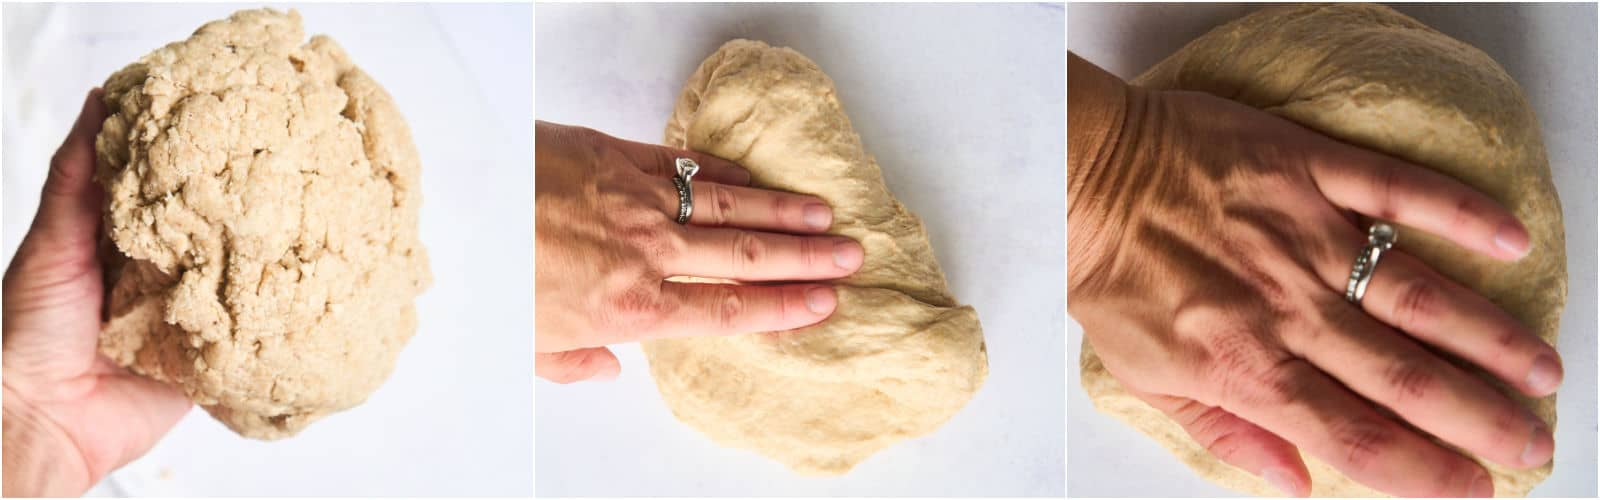 grid of 3 images showing kneading bread by hand